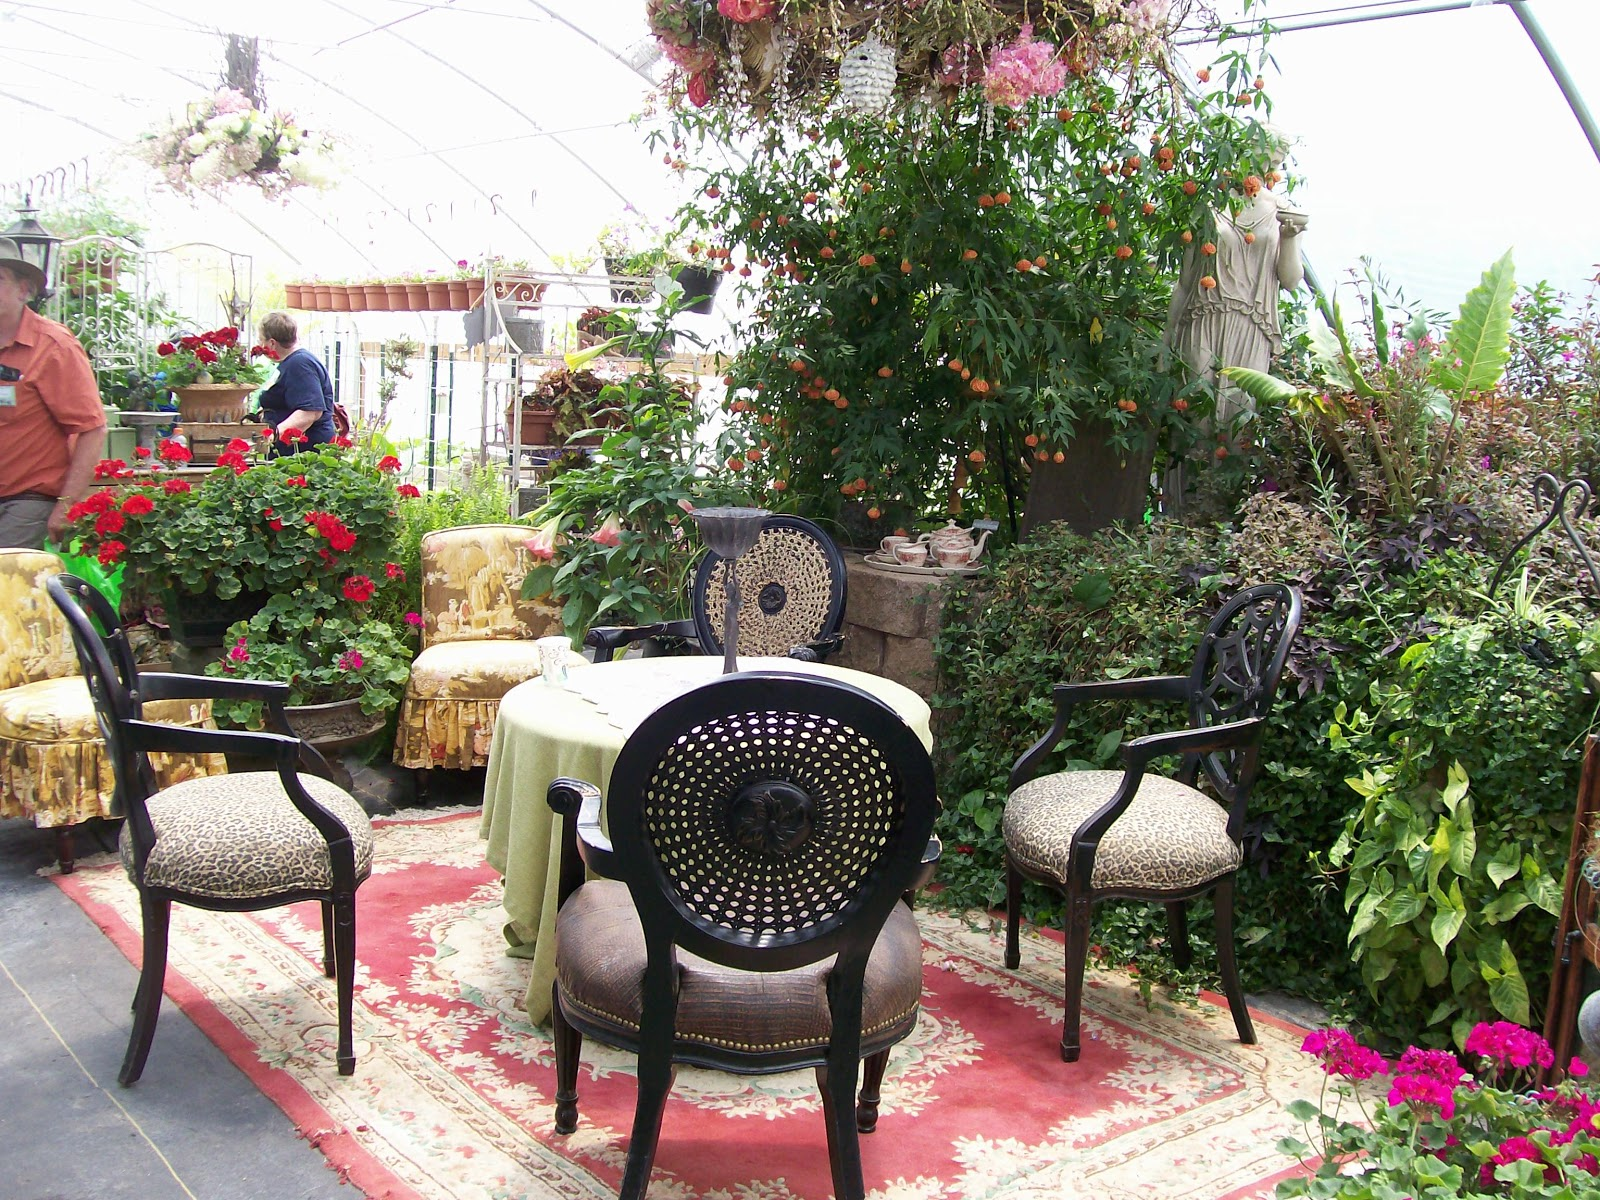 Workbench Area In Covered Center Of The Greenhouse